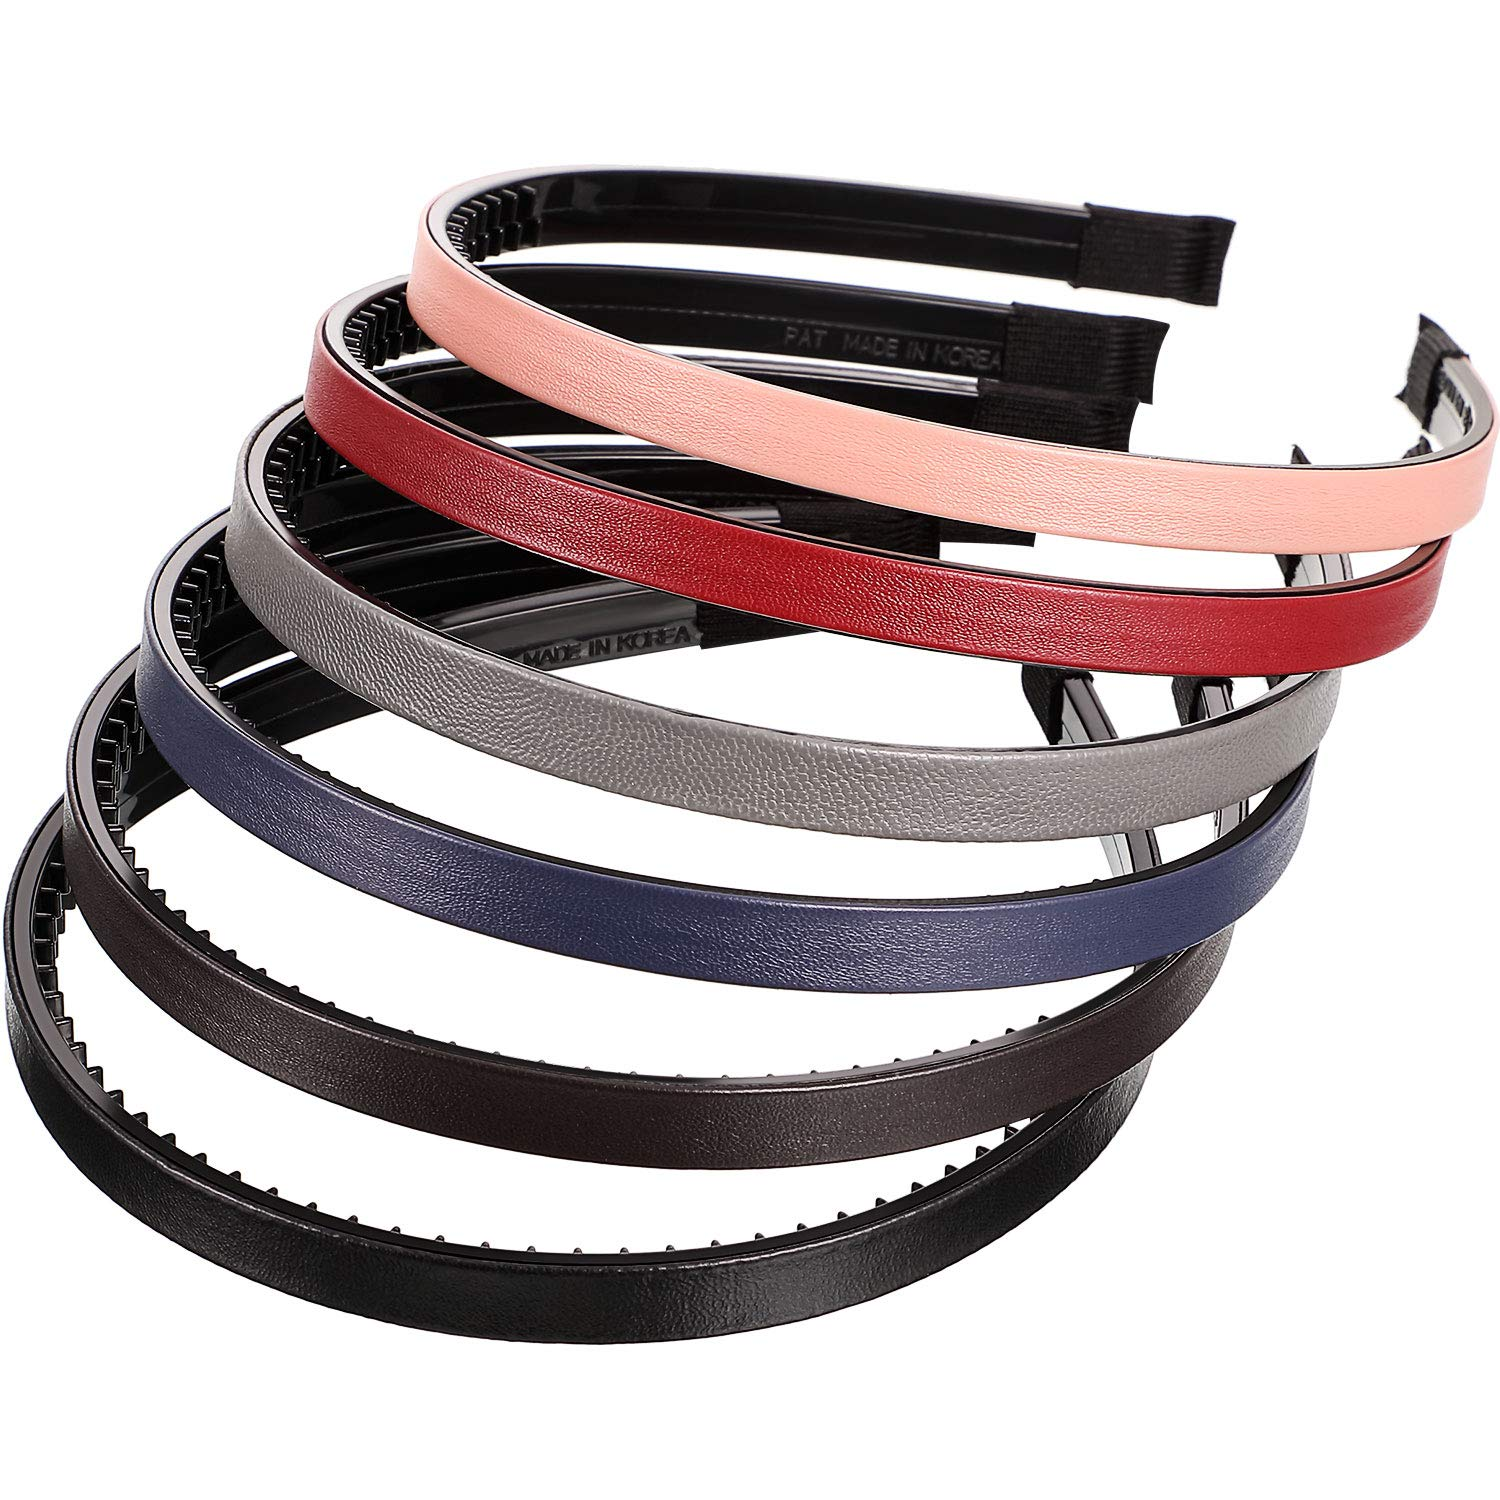 6 Pieces Skinny Leather Covered Headband Plastic Skinny Headband Hair Loop Clasp Hairbands Solid Simple Headband for Women and Girls (Lustrous Pink, Rose Red, Blue, Gold, Silver and Grey) : Beauty